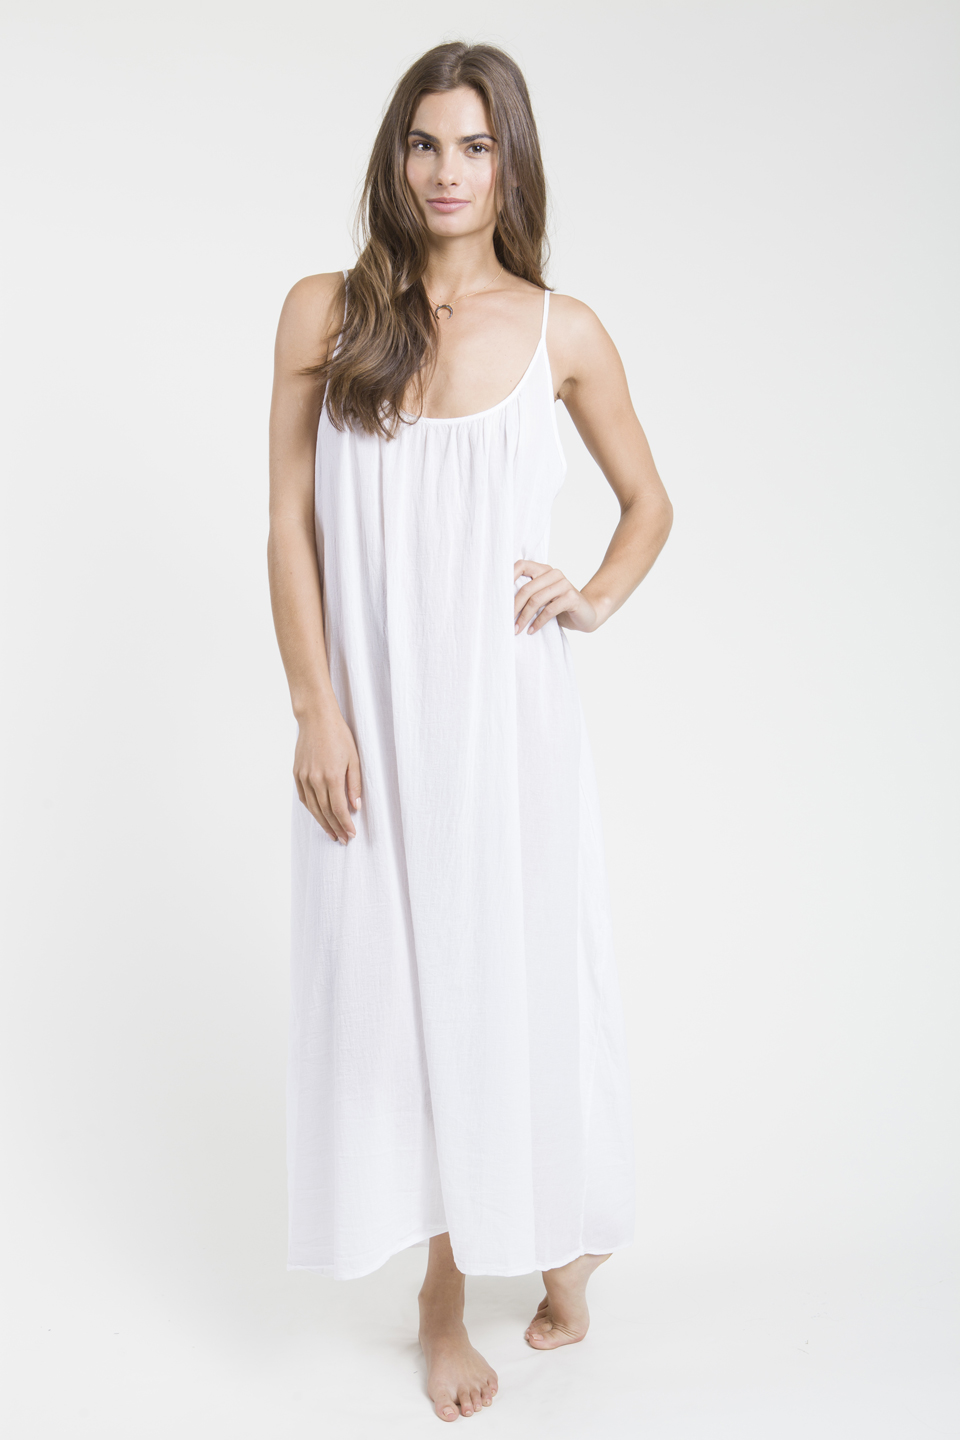 Tulum low-back maxi - white